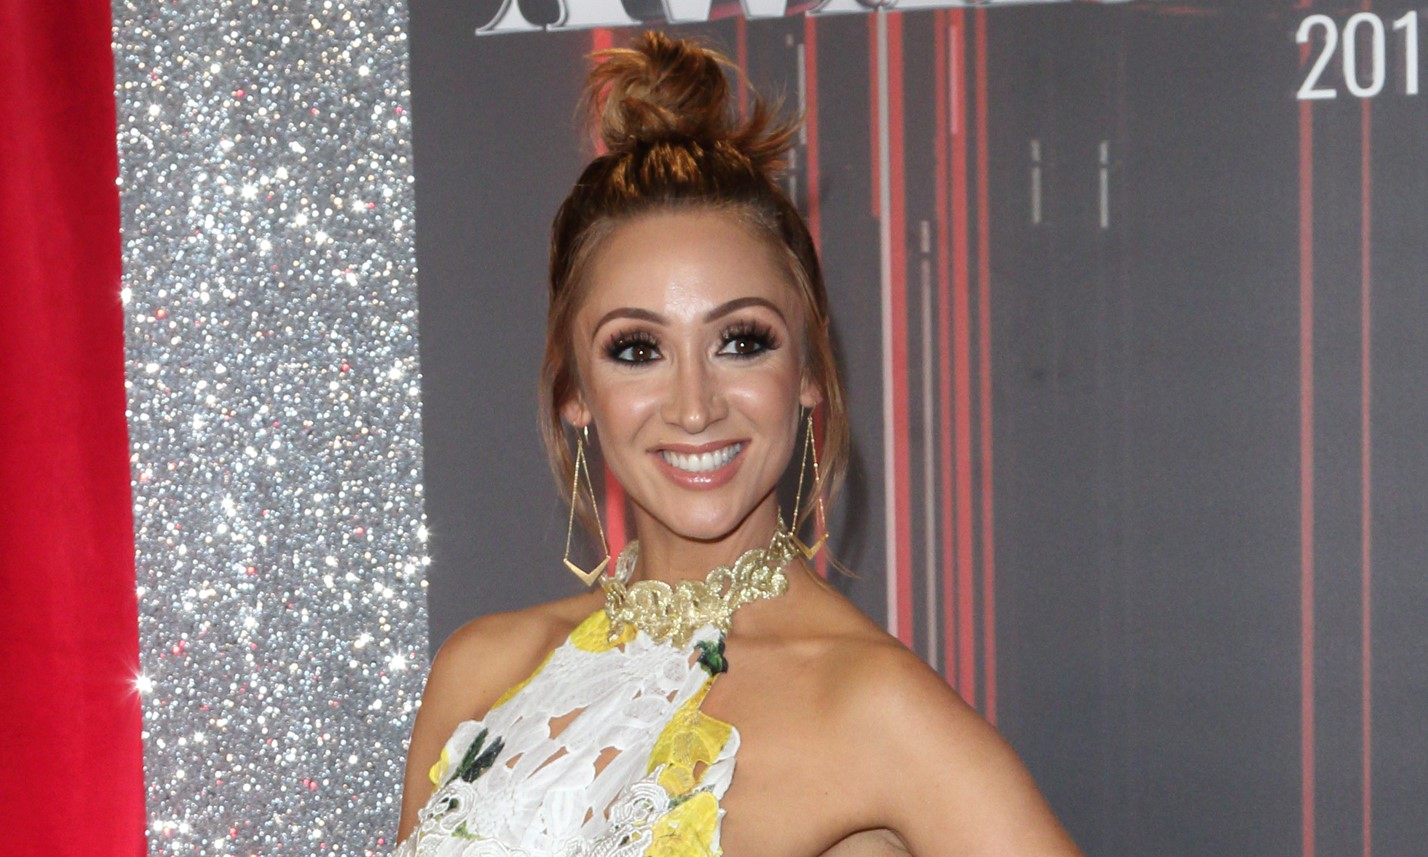 Lucy-Jo Hudson announces she's quit Hollyoaks after one year